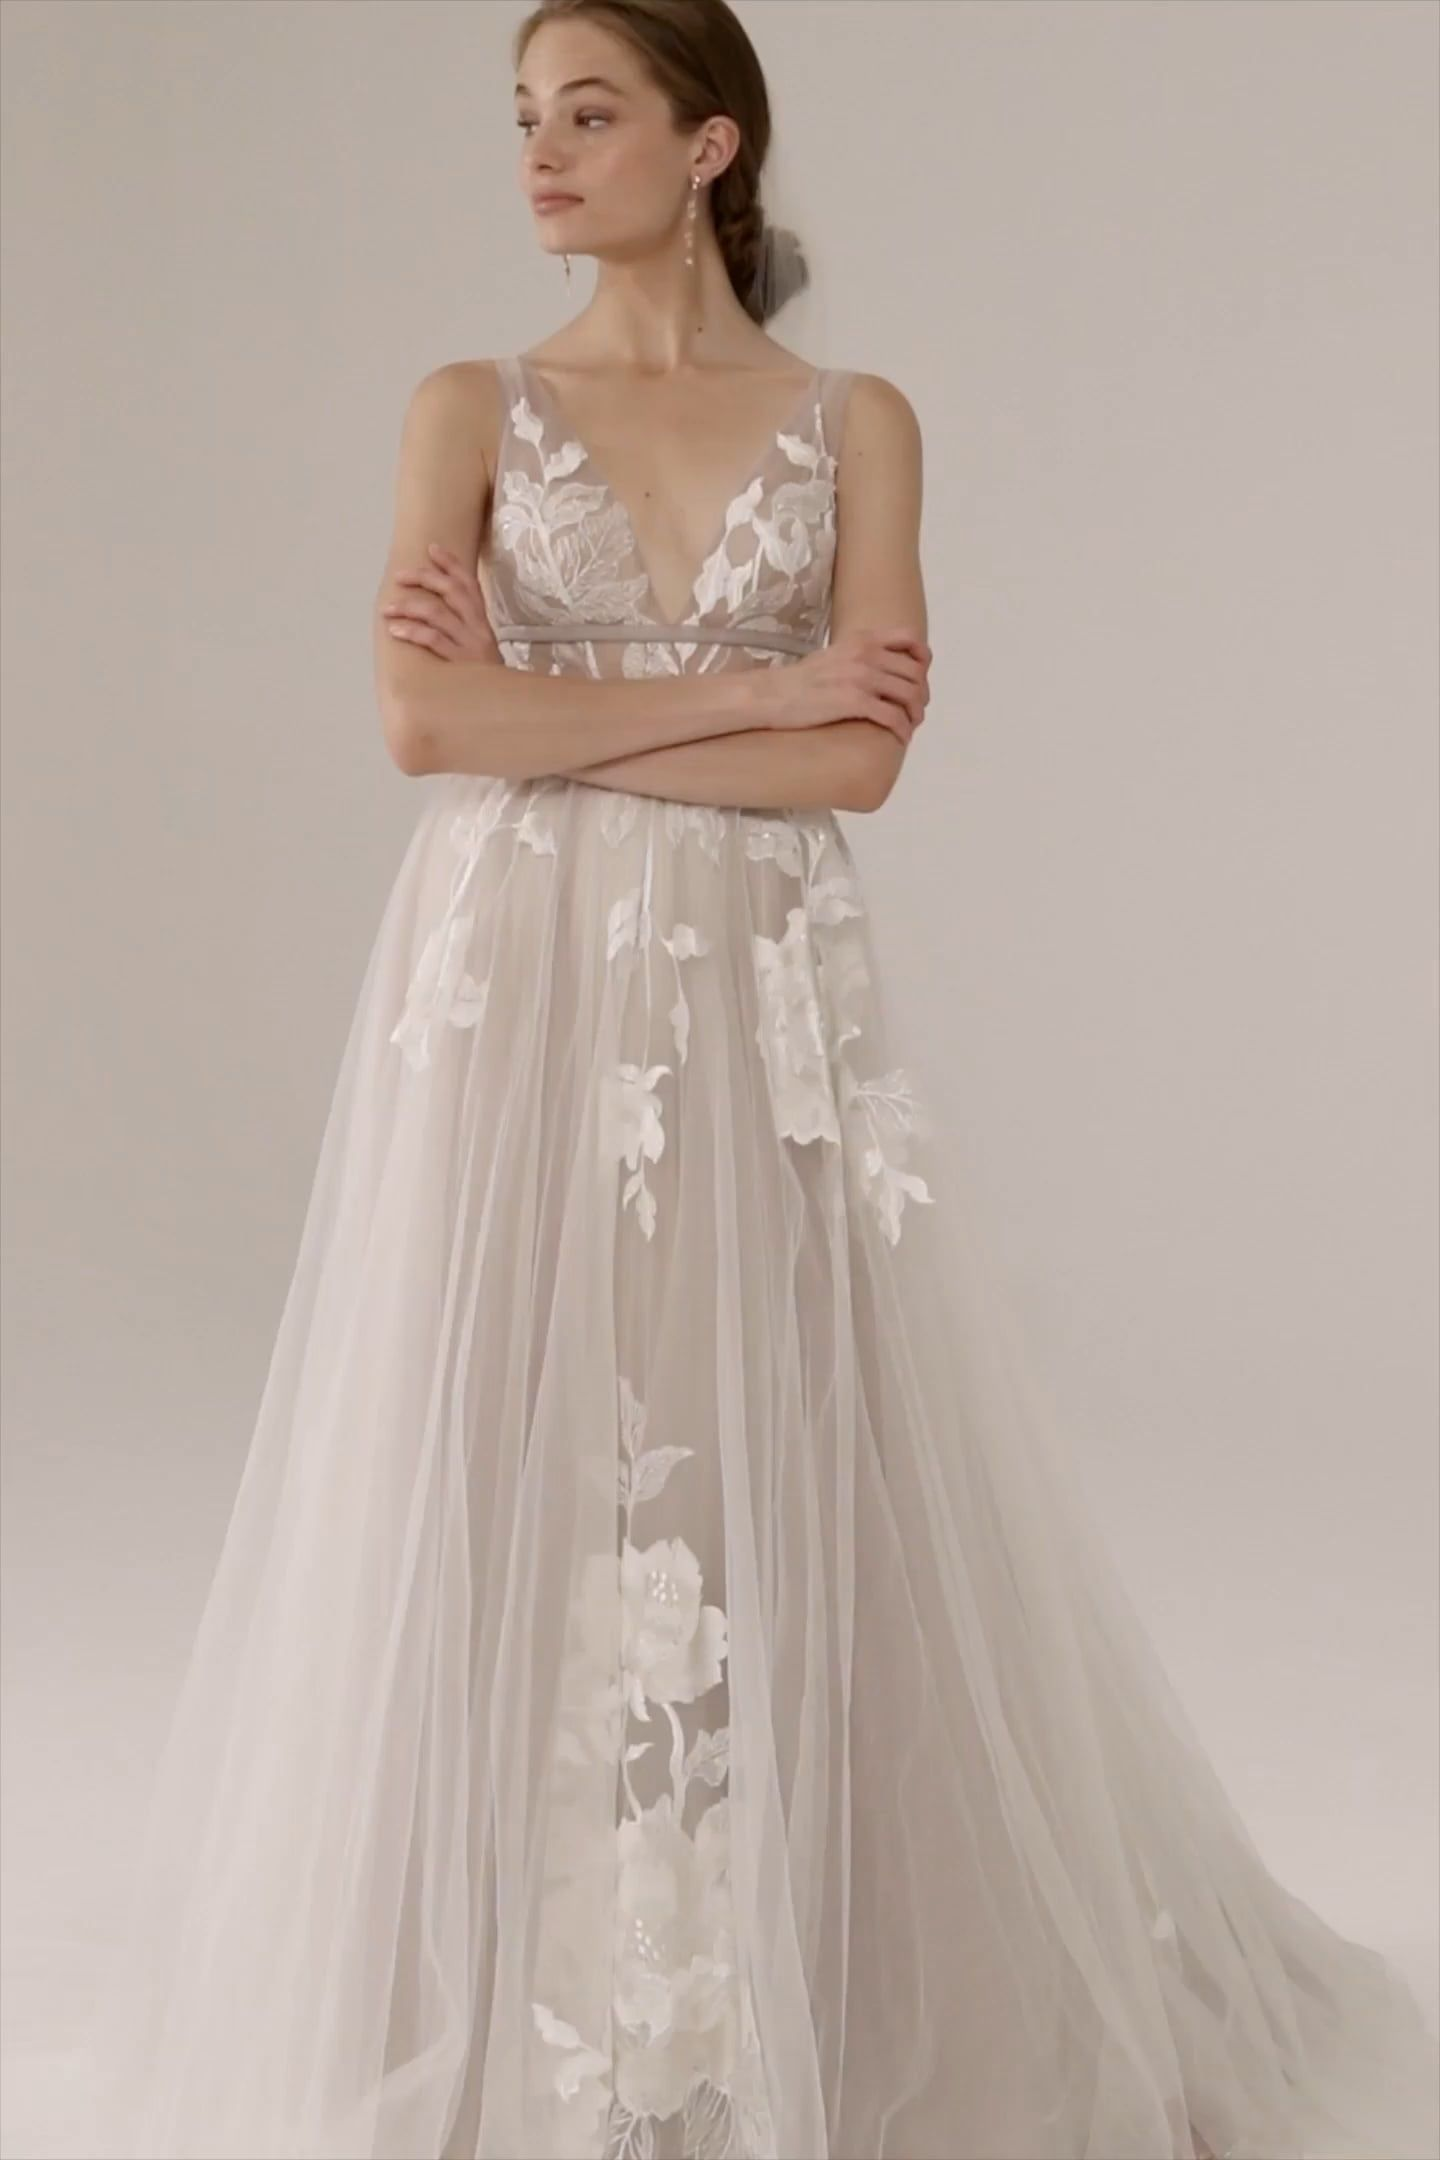 2020 New Wedding Dress Fashion Dress pakistani bridal dresses with prices backless formal gown